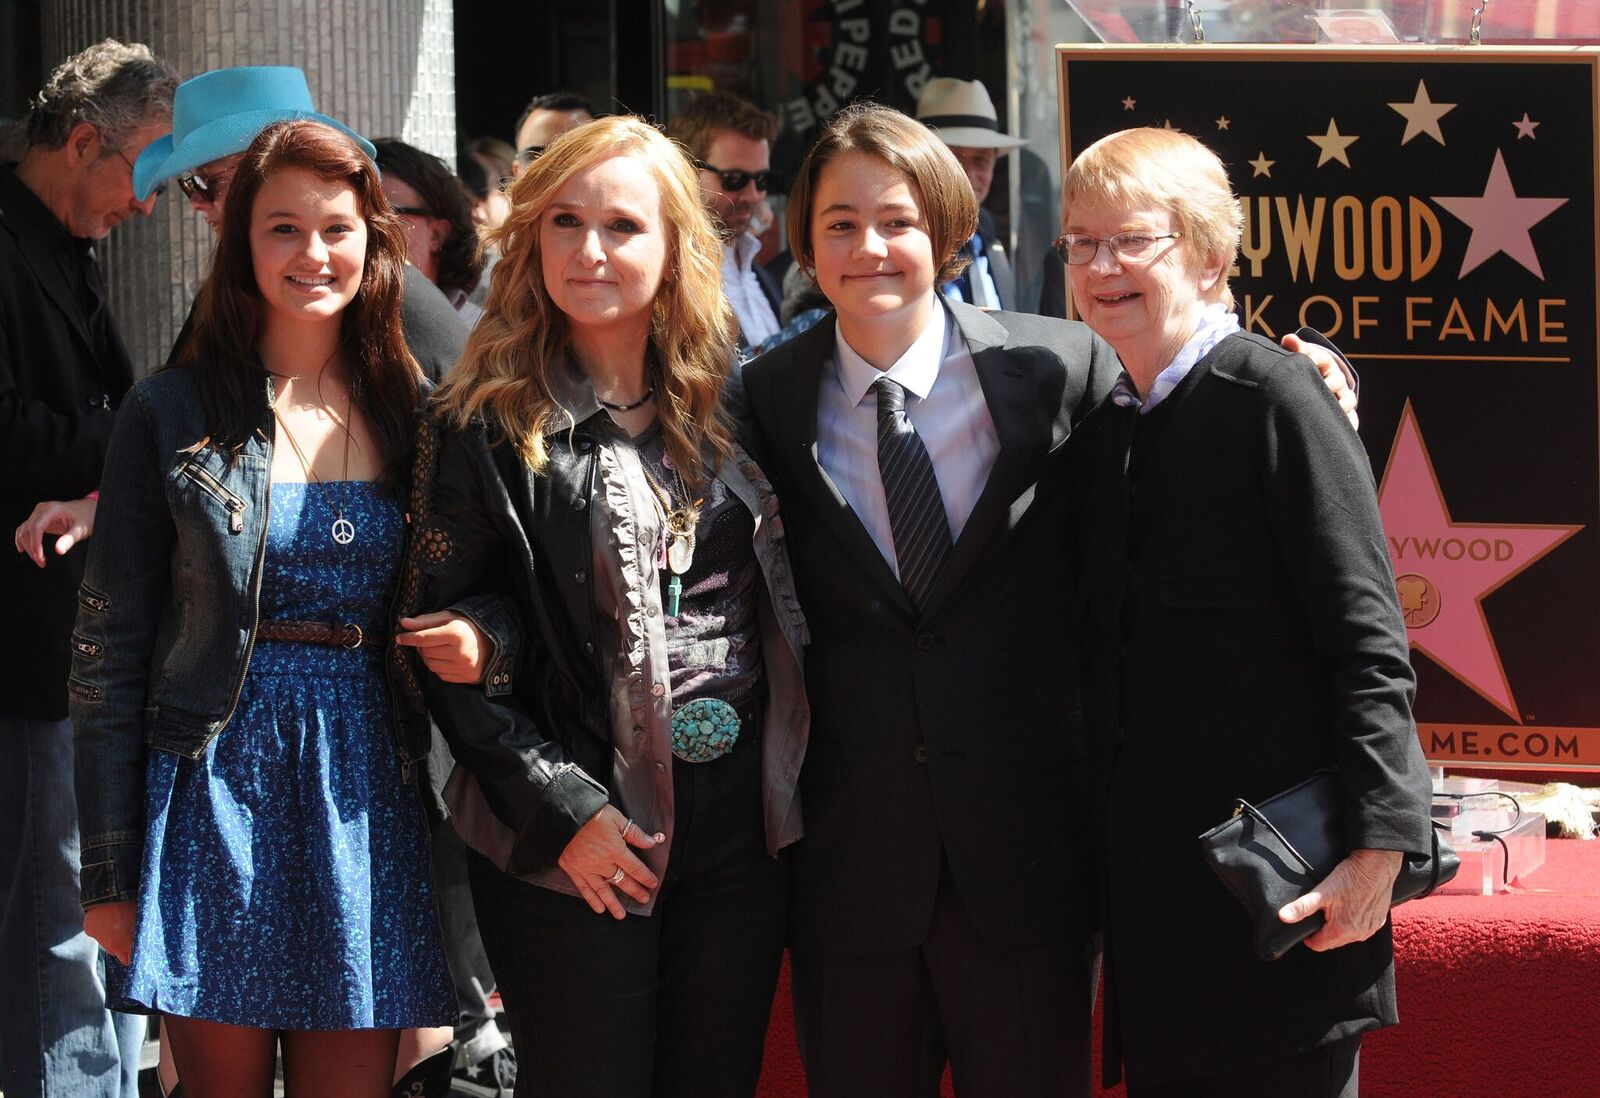 Bailey Cypher, Melissa Etheridge, Beckett Cypher, and Elizabeth Williamson atEtheridge's Hollywood Walk of Fame Induction Ceremony on September 27, 2011, in Hollywood, California | Photo:Duffy-Marie Arnoult/WireImage/Getty Images